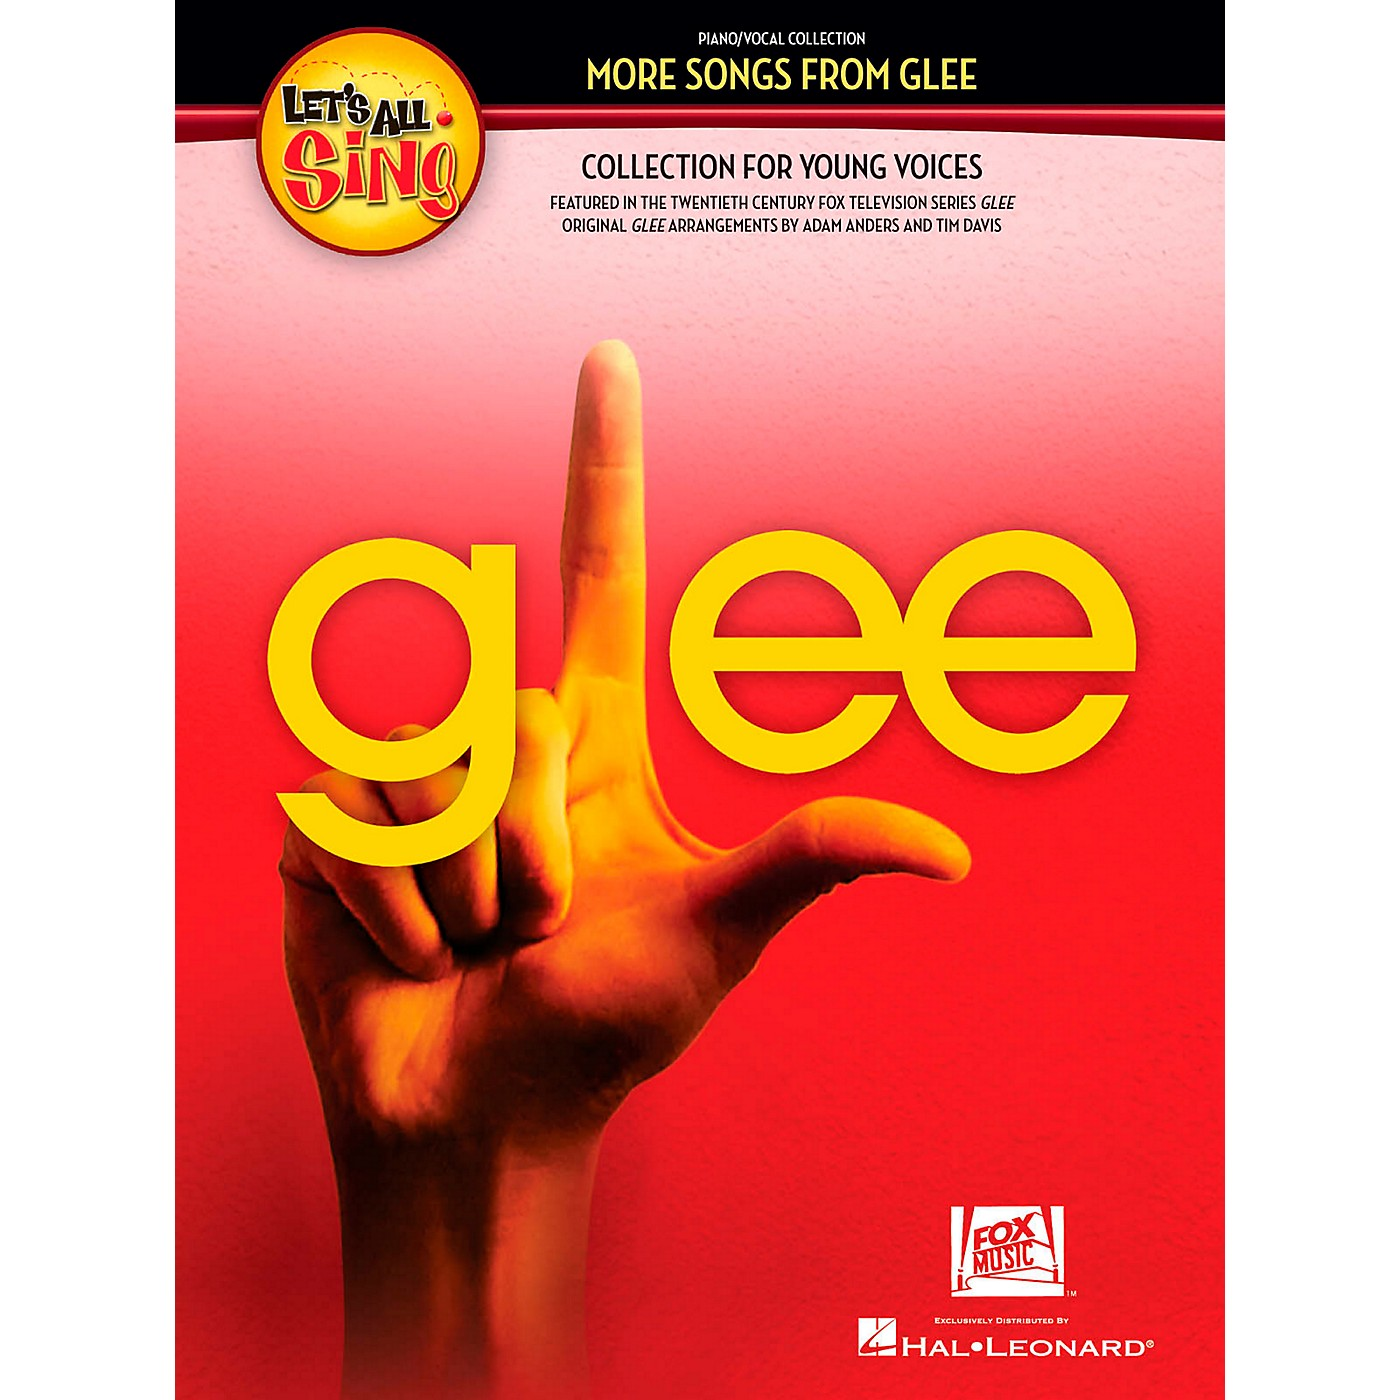 Hal Leonard Let's All Sing More Songs From Glee Collection for Young Voices Performance/Accompaniment CD thumbnail